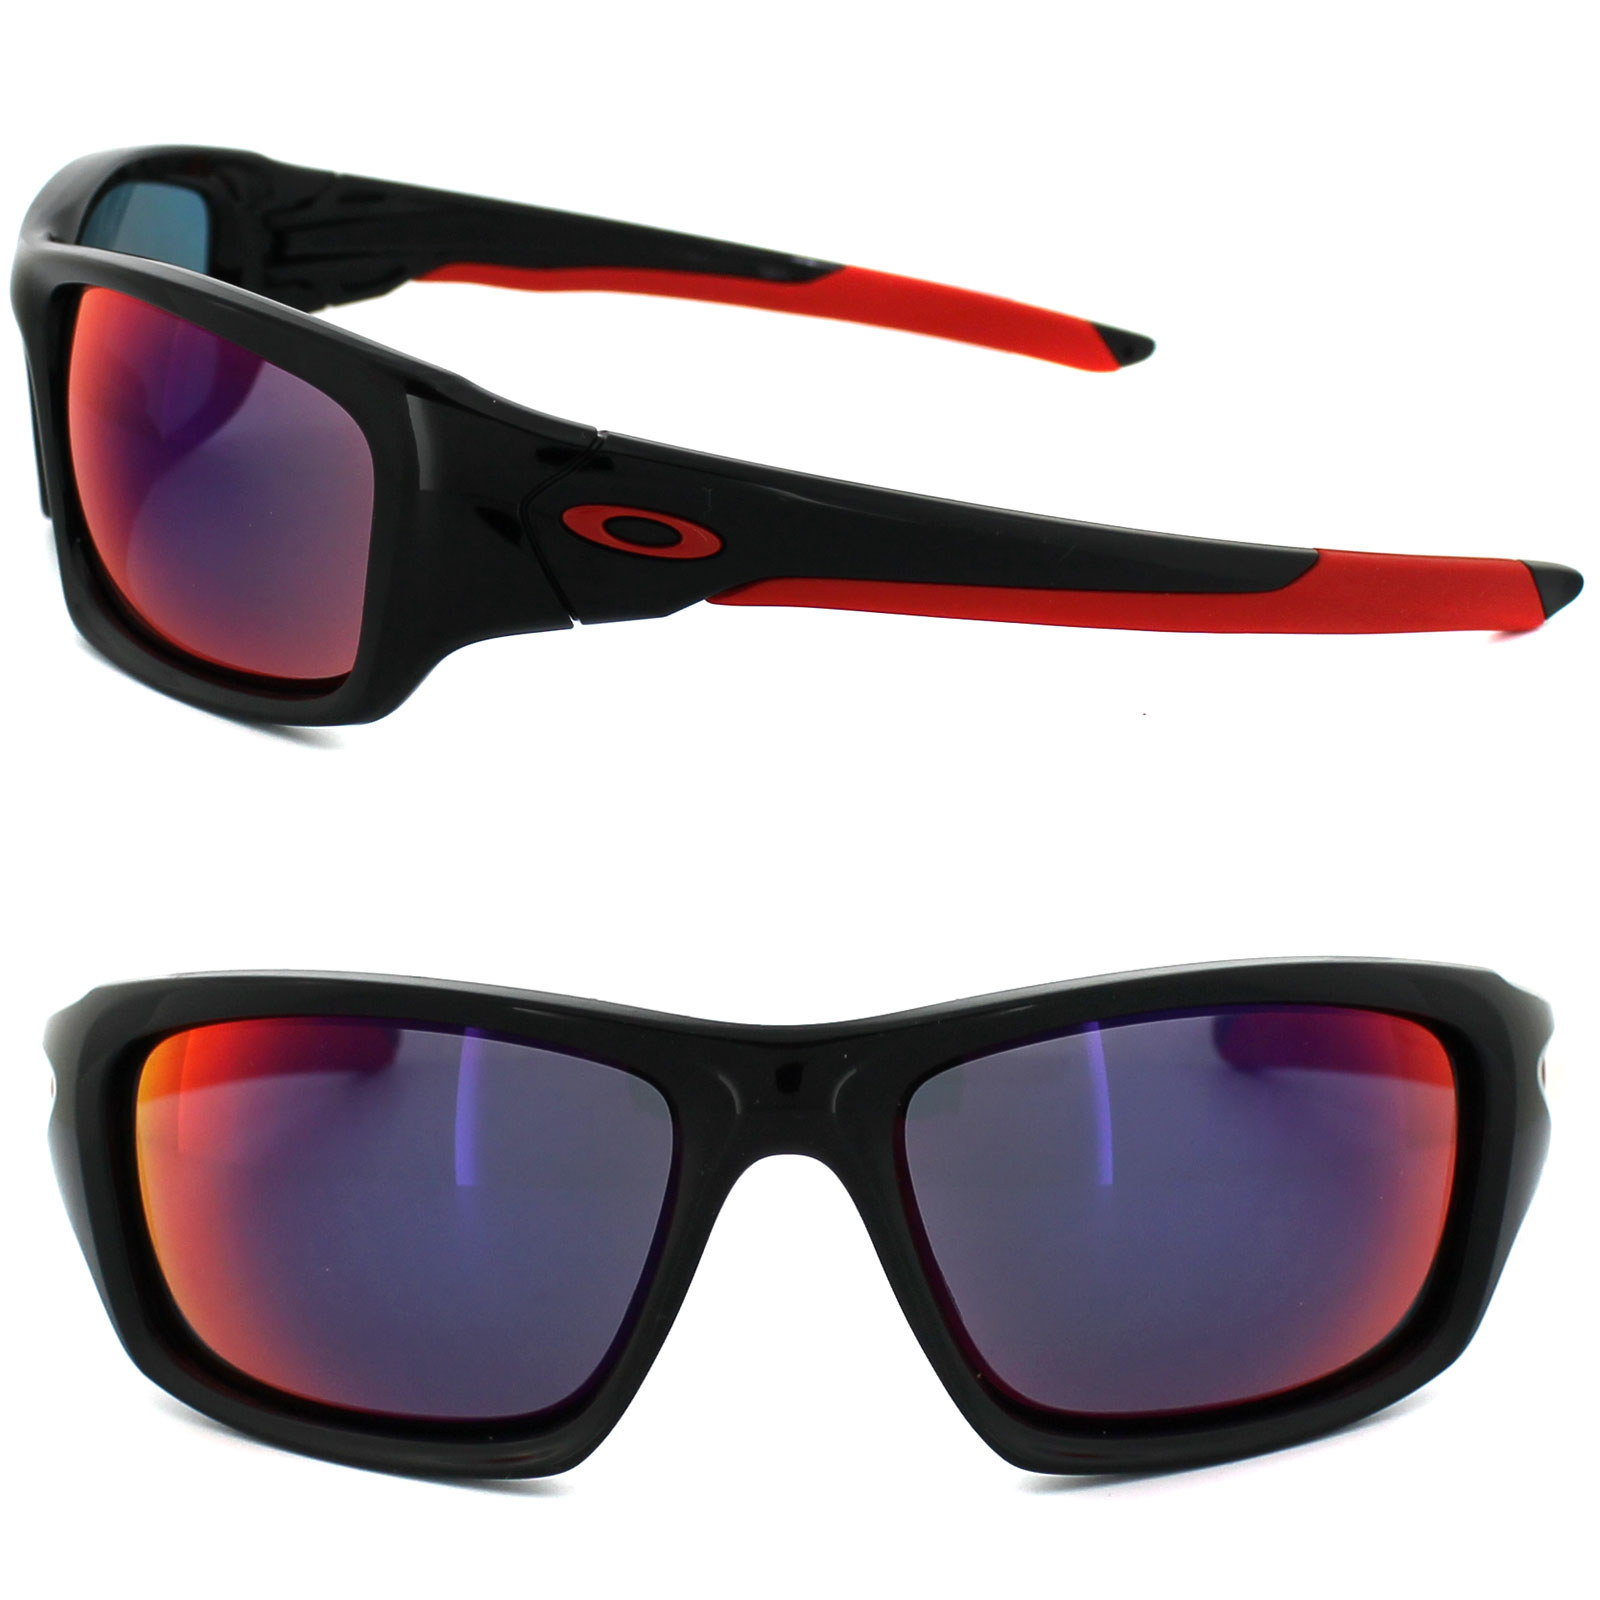 oakley red sunglasses  Oakley Sunglasses Valve OO9236-02 Polished Black Positive Red ...